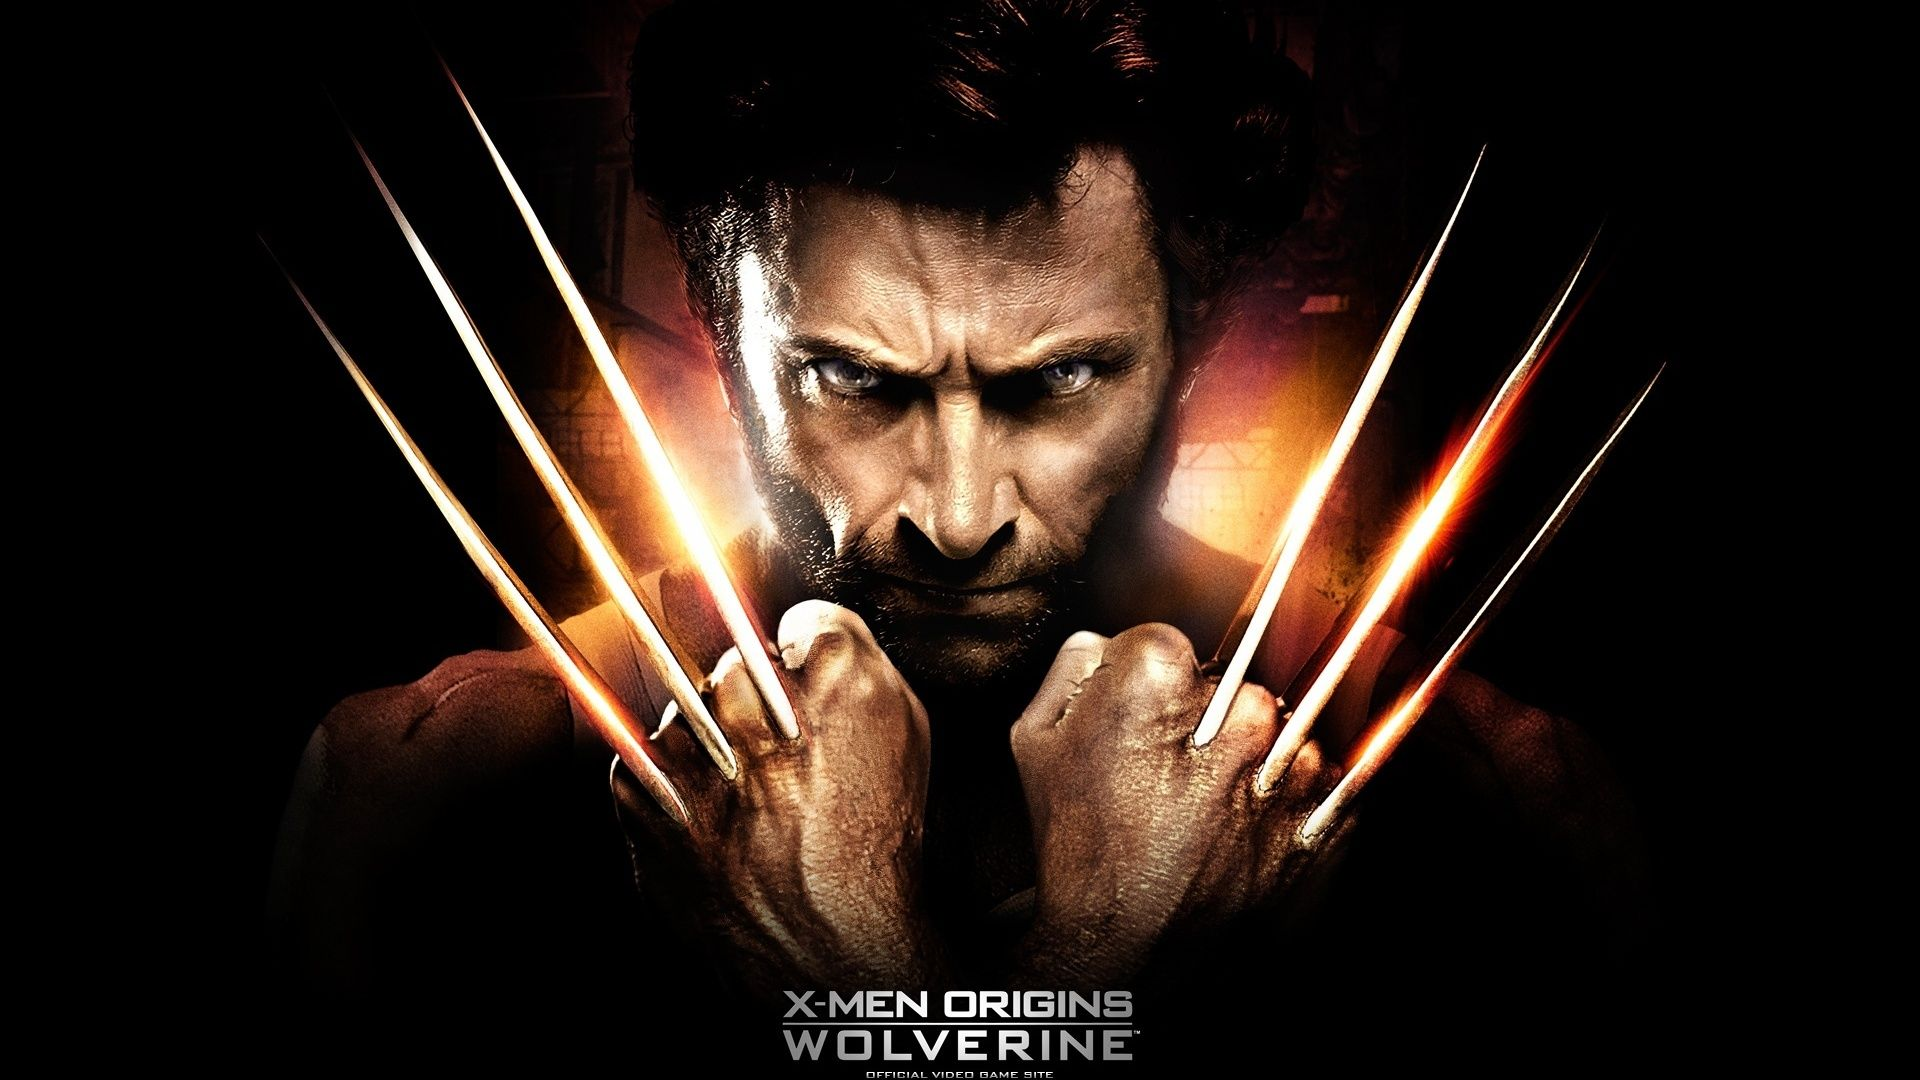 X Men Origins Wolverine HD wallpaper download in 1920x1080 1920x1080